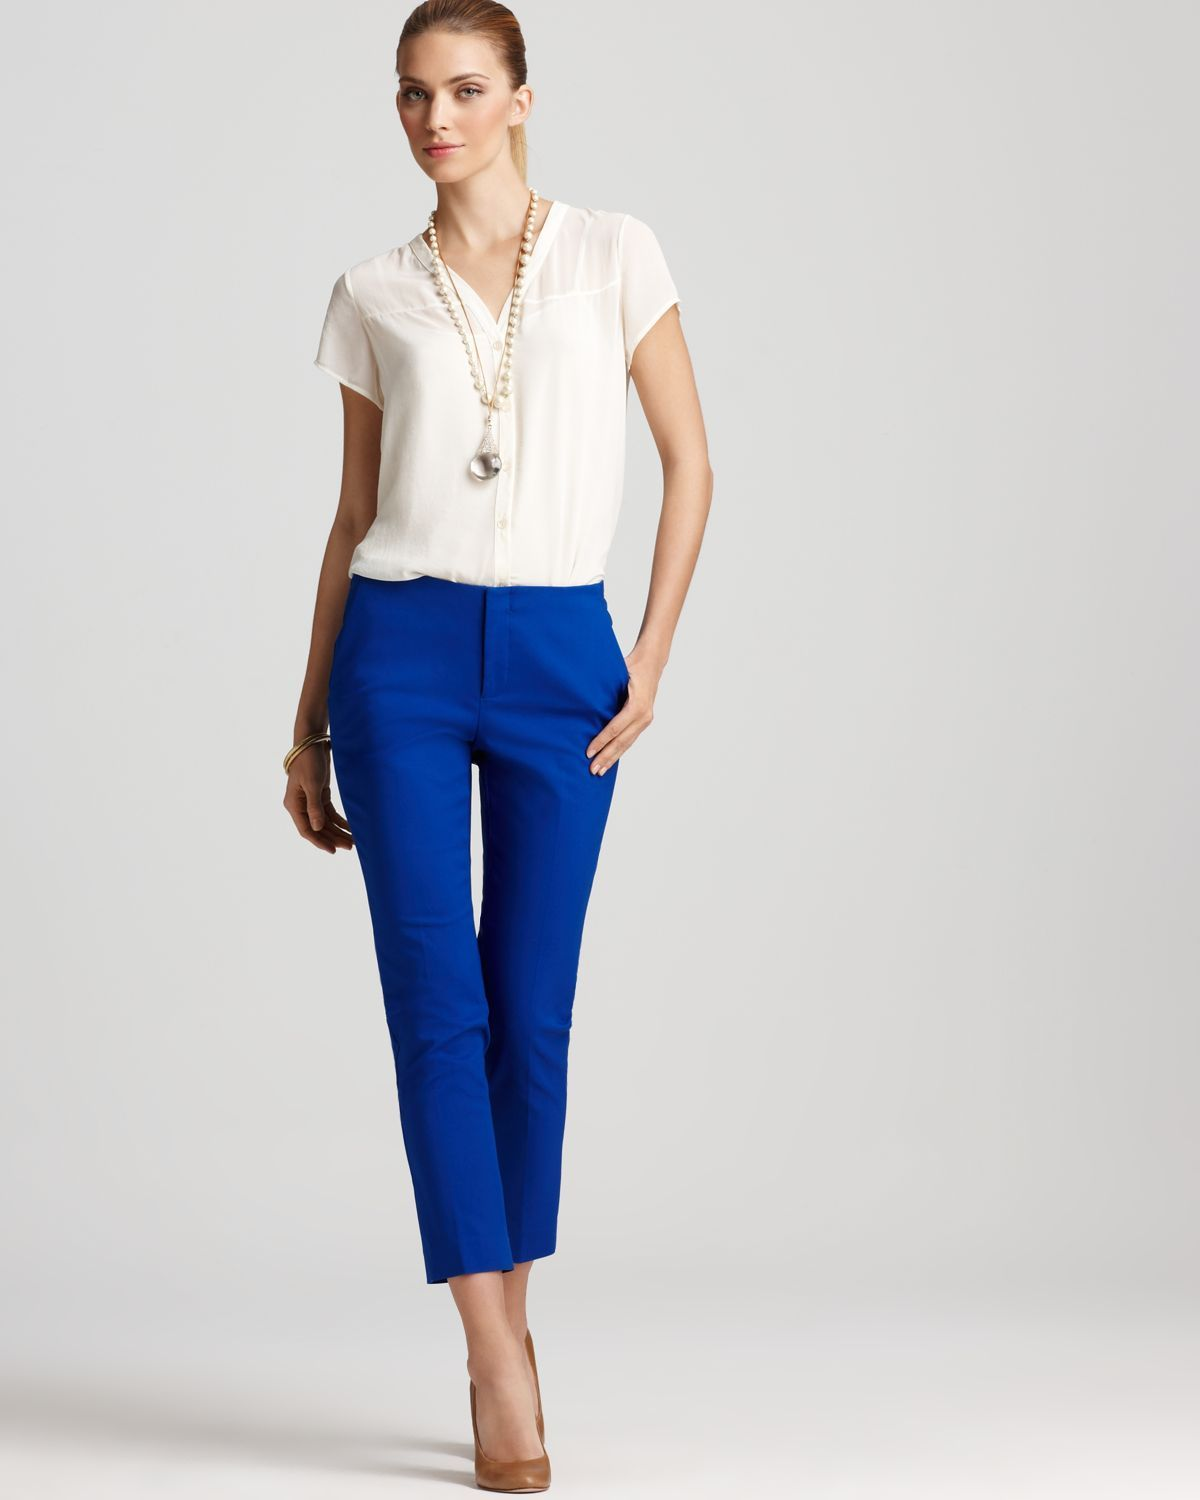 Royal blue pants. trying to find what to wear on the top. | Closet | Pinterest | Royal blue ...